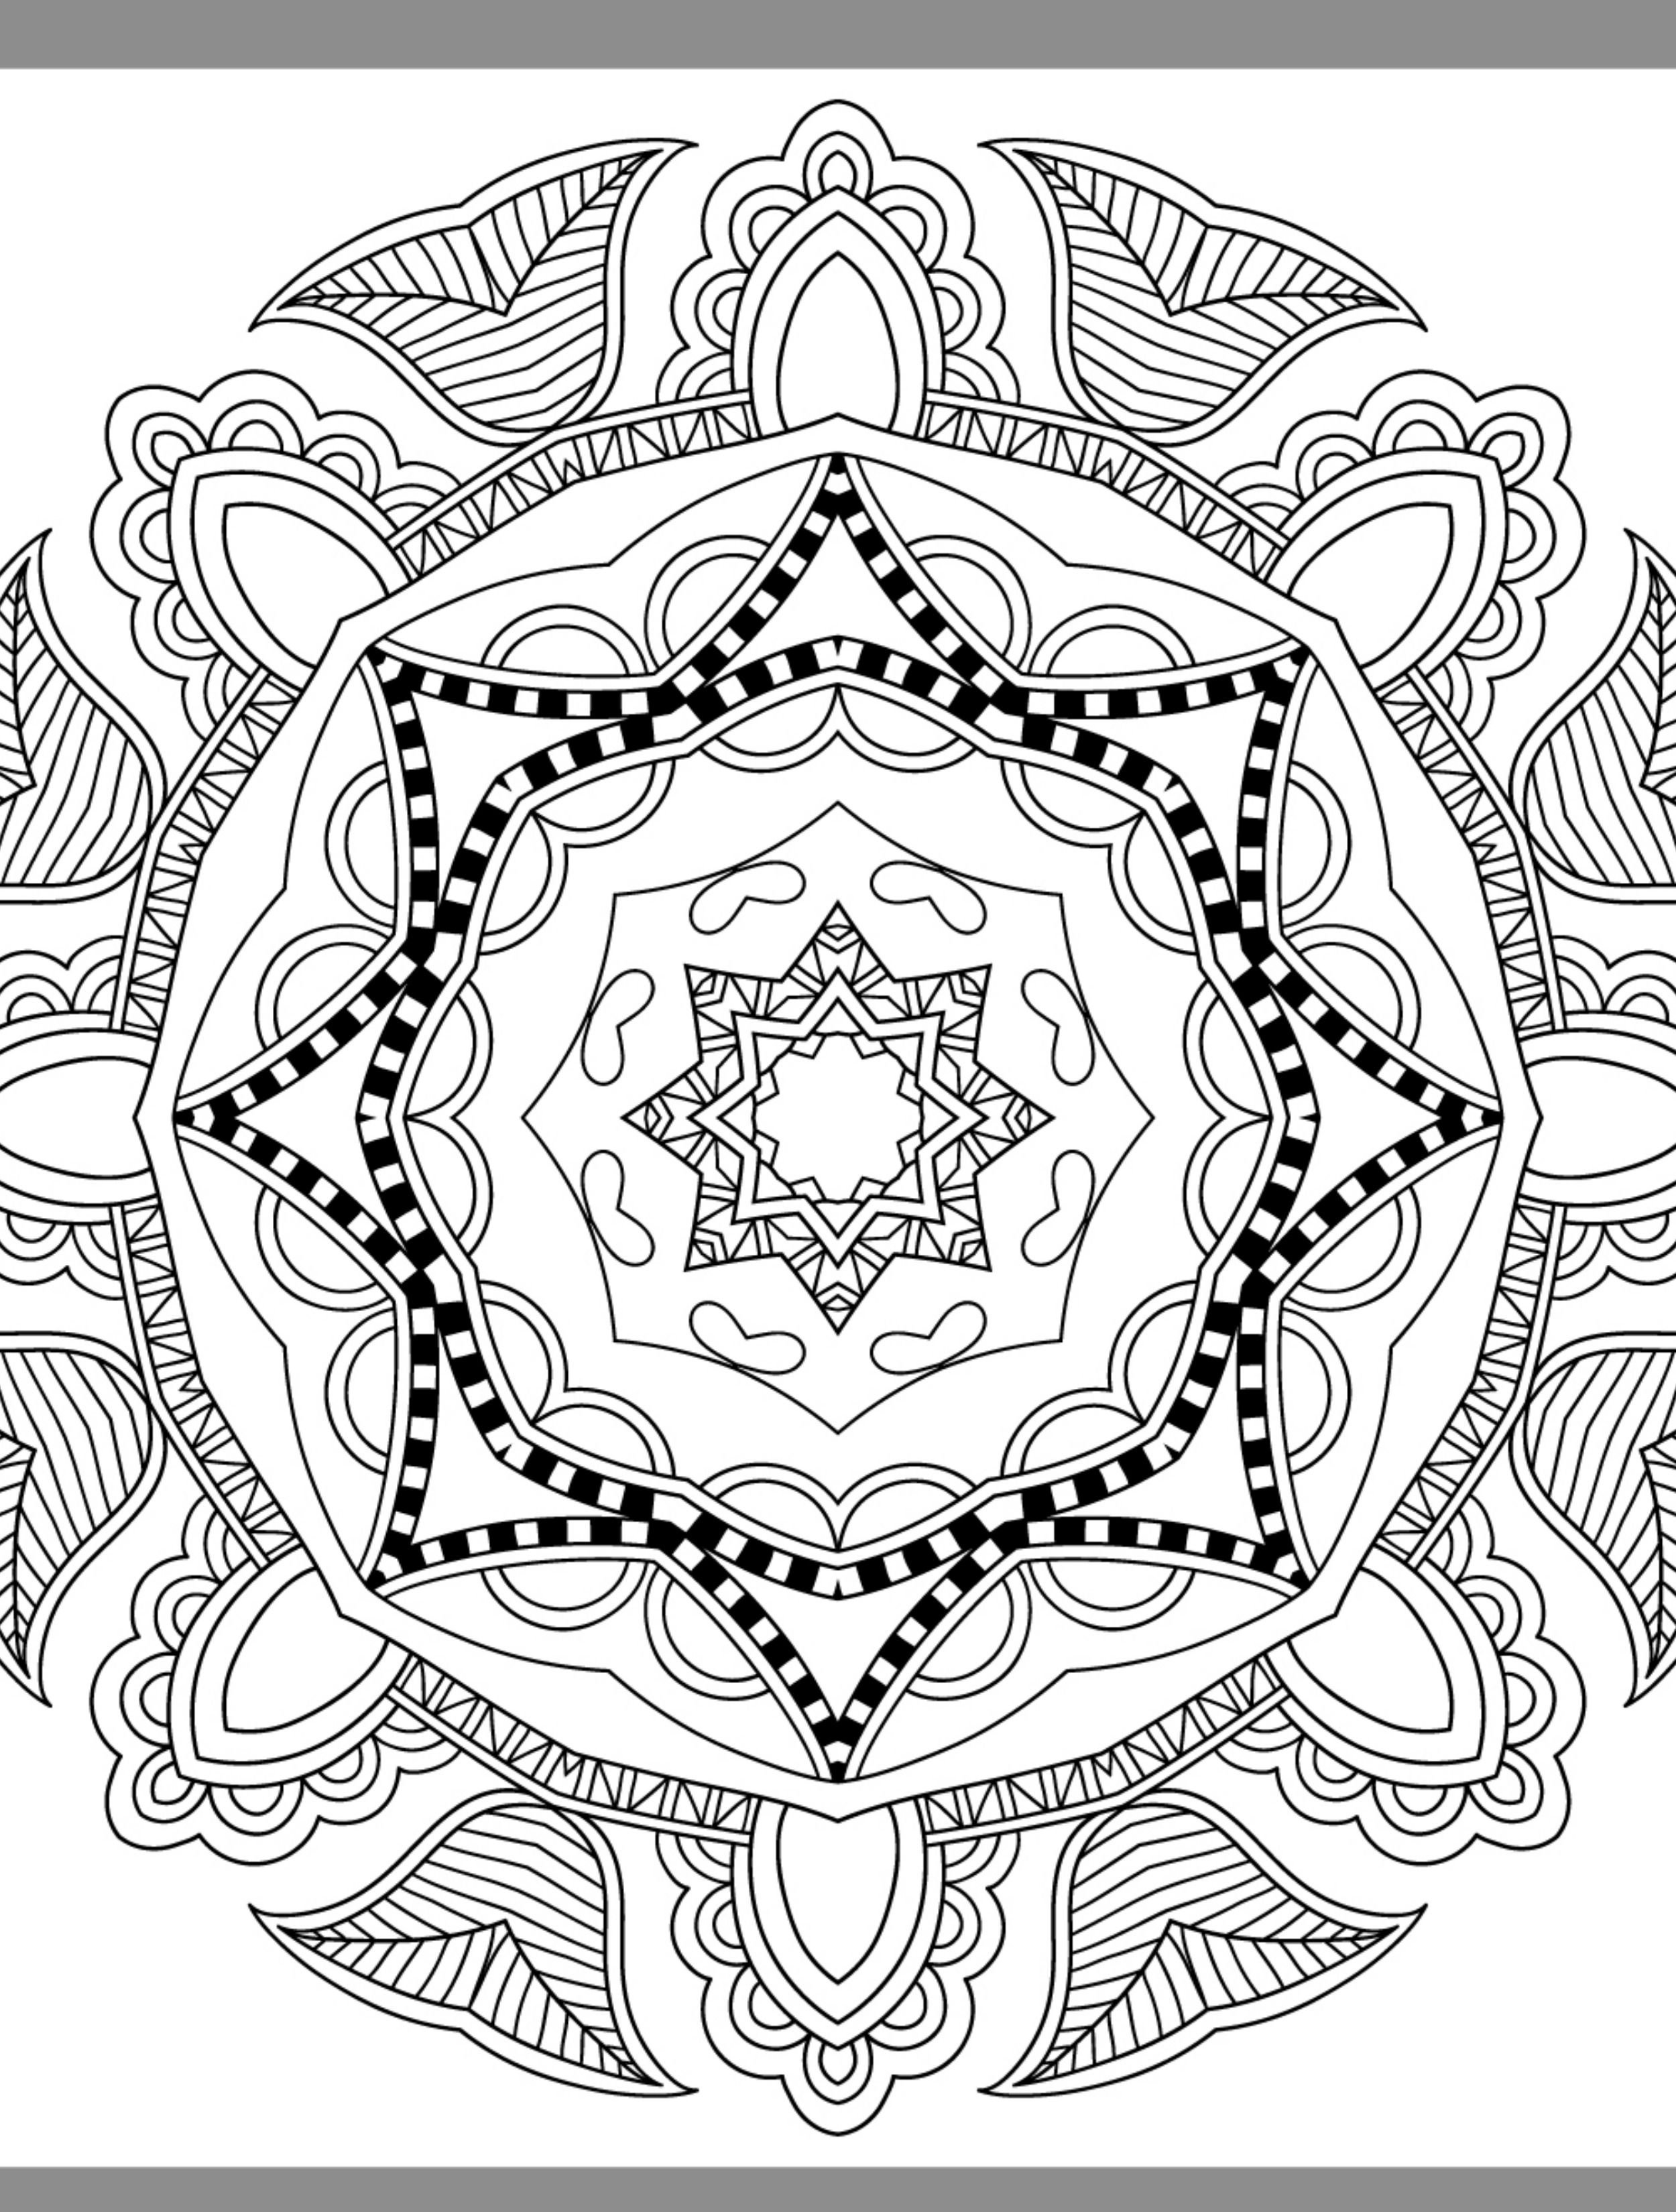 24 More Free Printable Adult Coloring Pages | Mandalas | Pinterest